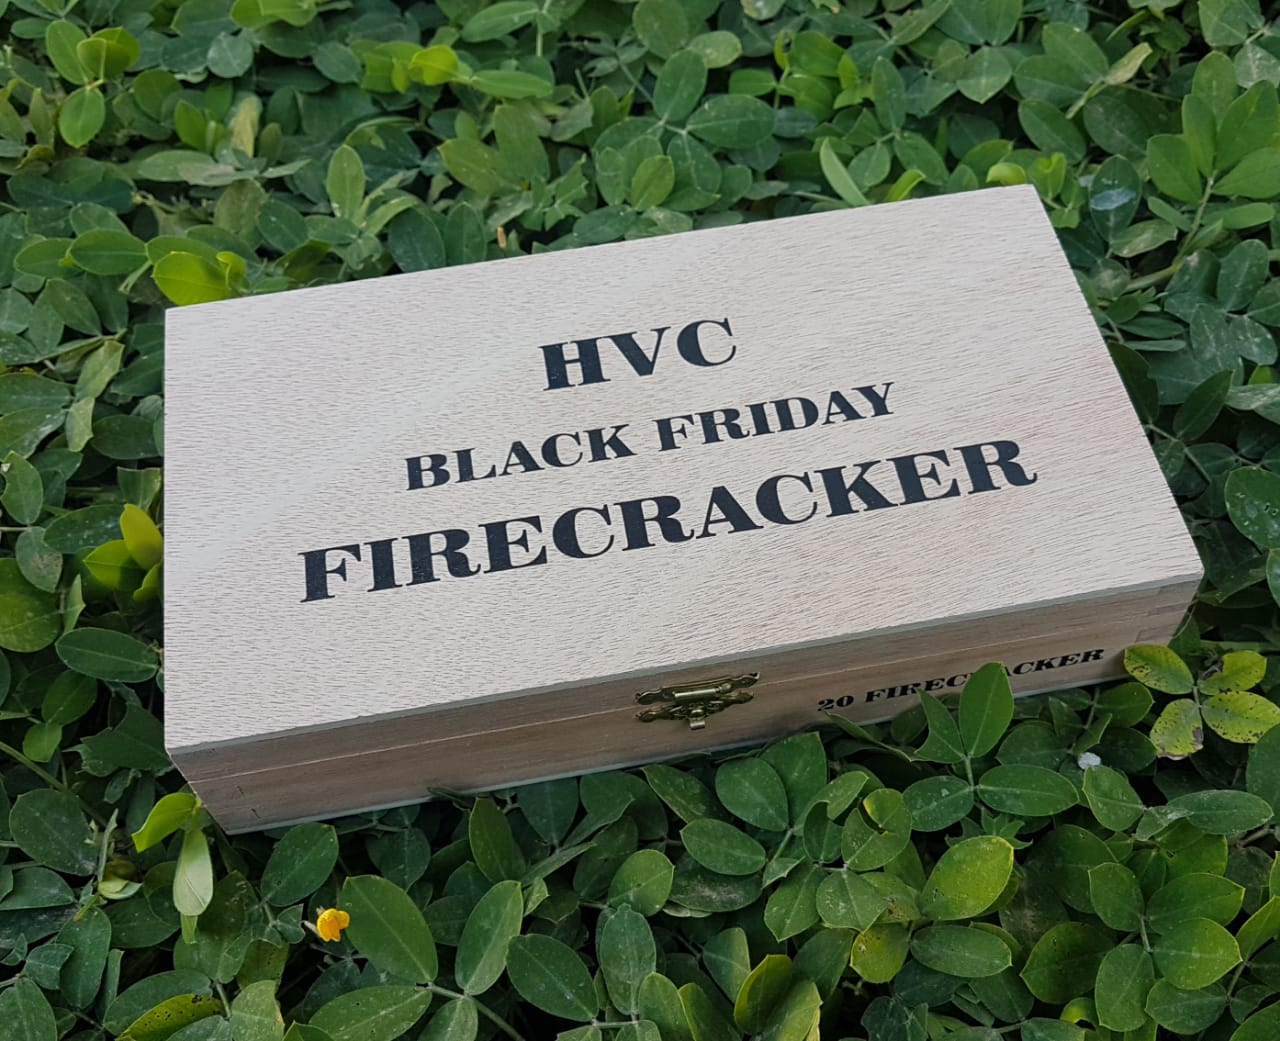 Cigar News: HVC Black Friday Firecracker Slated for November